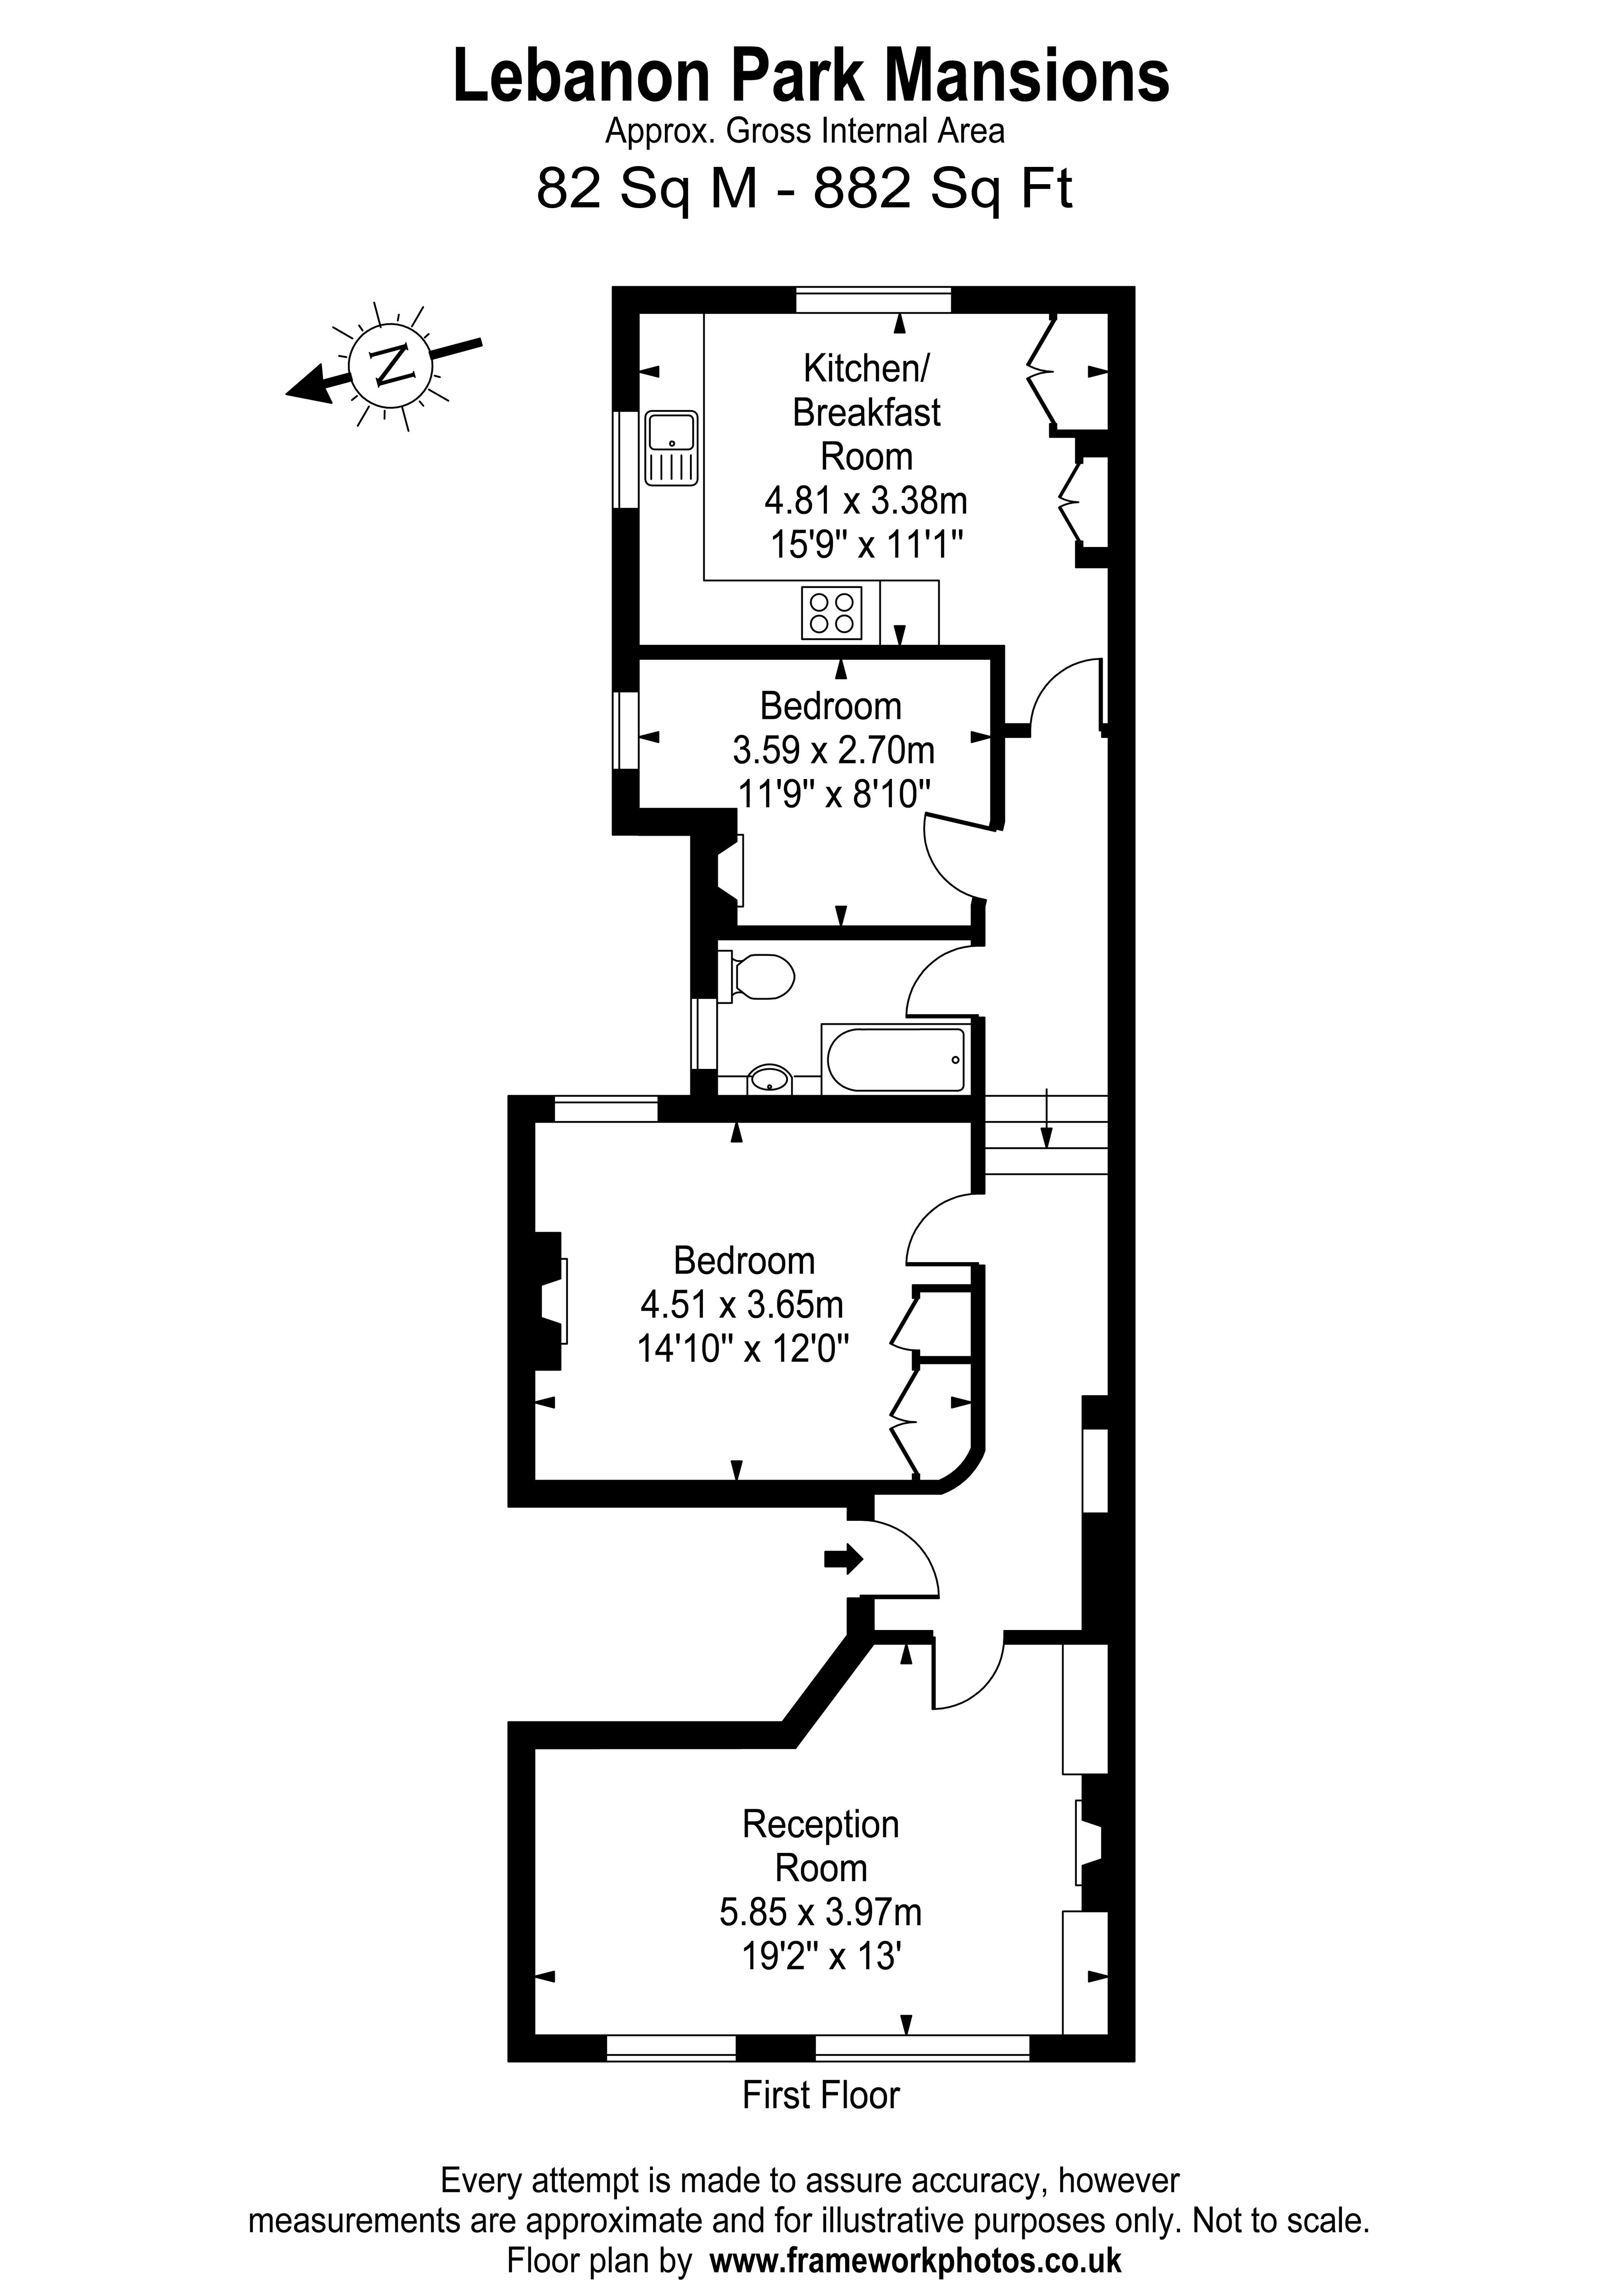 Floorplans For Lebanon Park Mansions, Twickenham